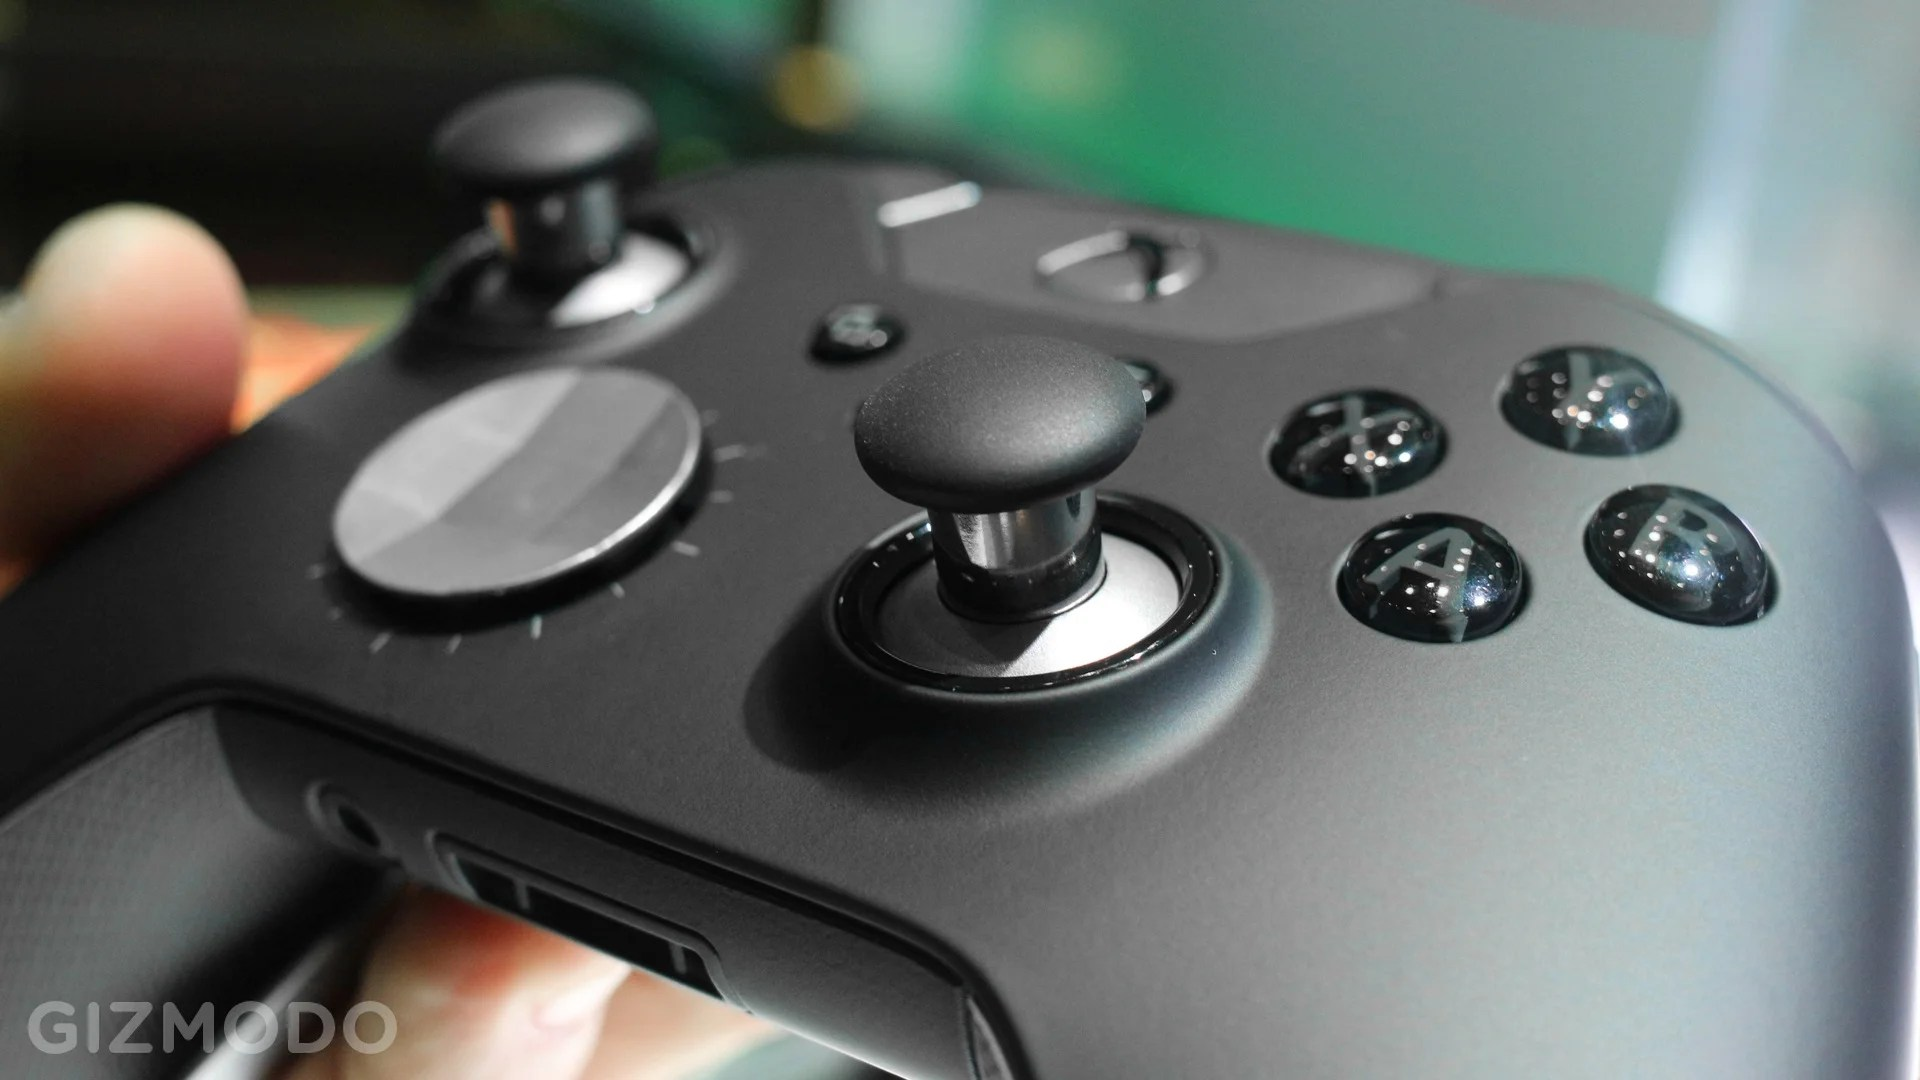 So This Is What A 150 Xbox Controller Feels Like